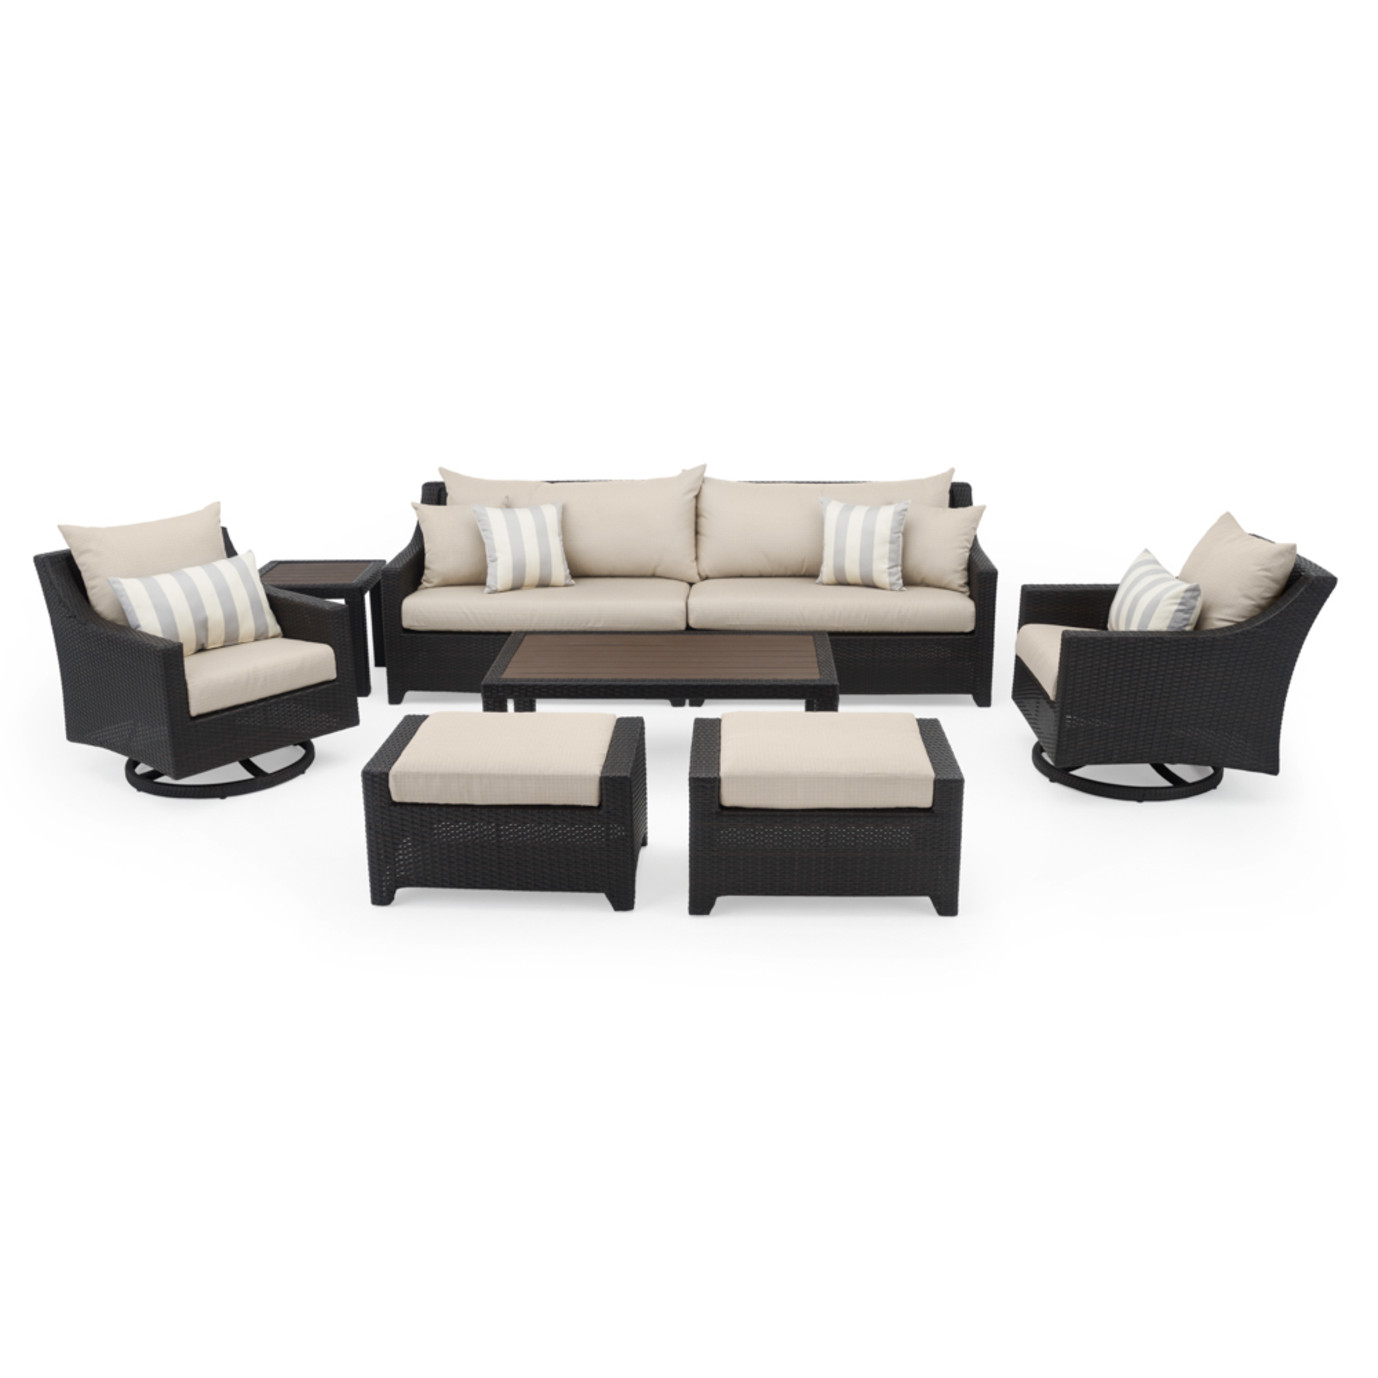 Deco™ Deluxe 8pc Sofa & Club Chair Set - Slate Grey